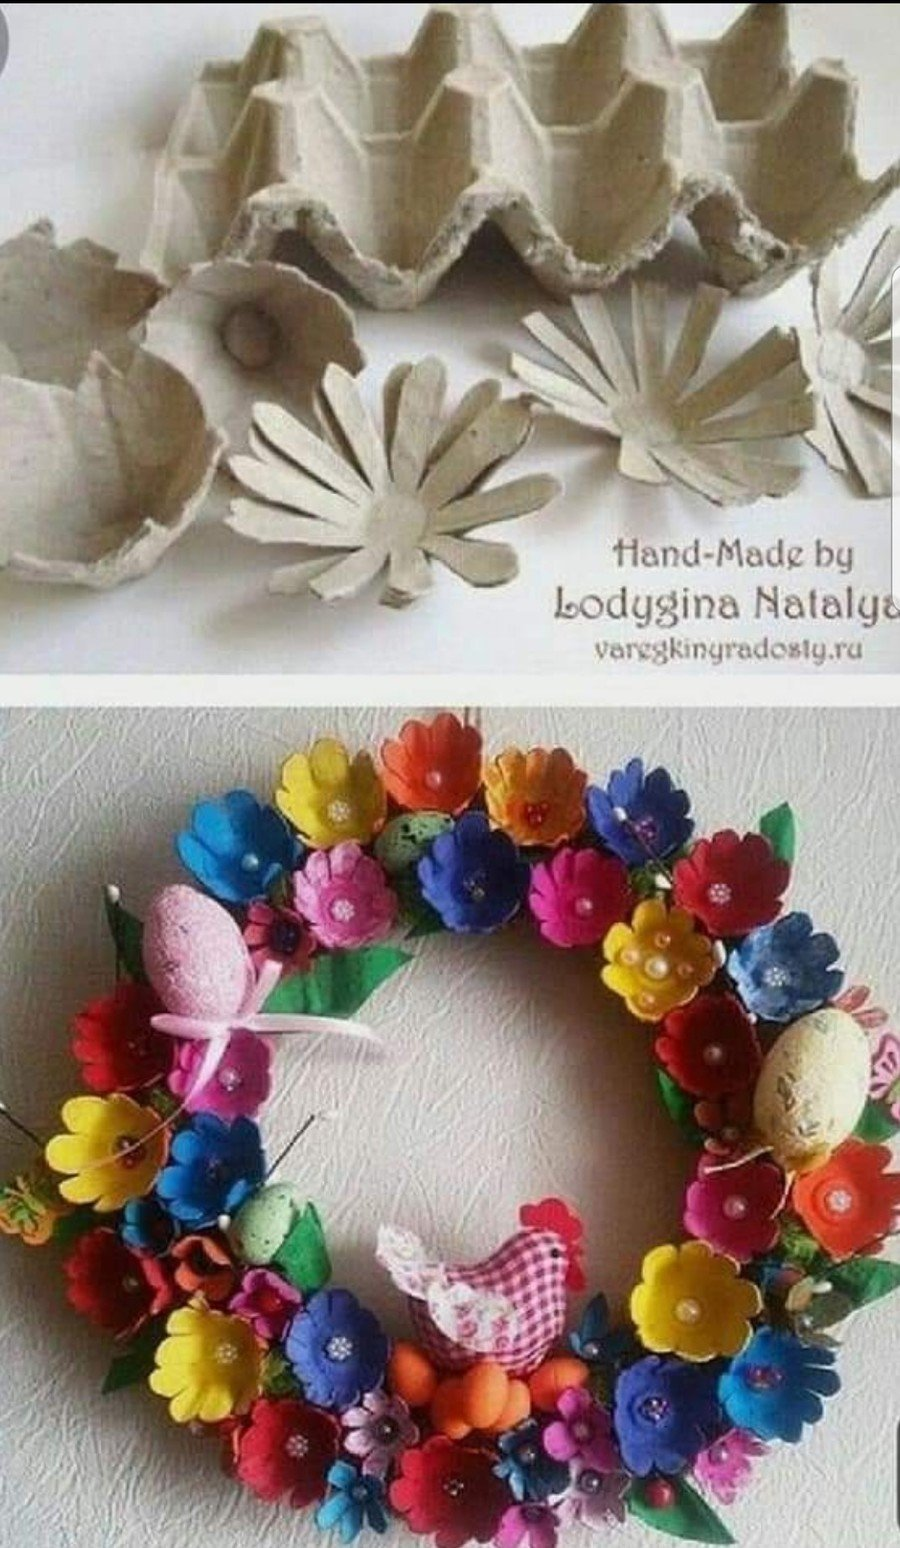 CLICK HERE TO LEARN HOW TO MAKE A BEAUTIFUL SPRING/EASTER WREATH